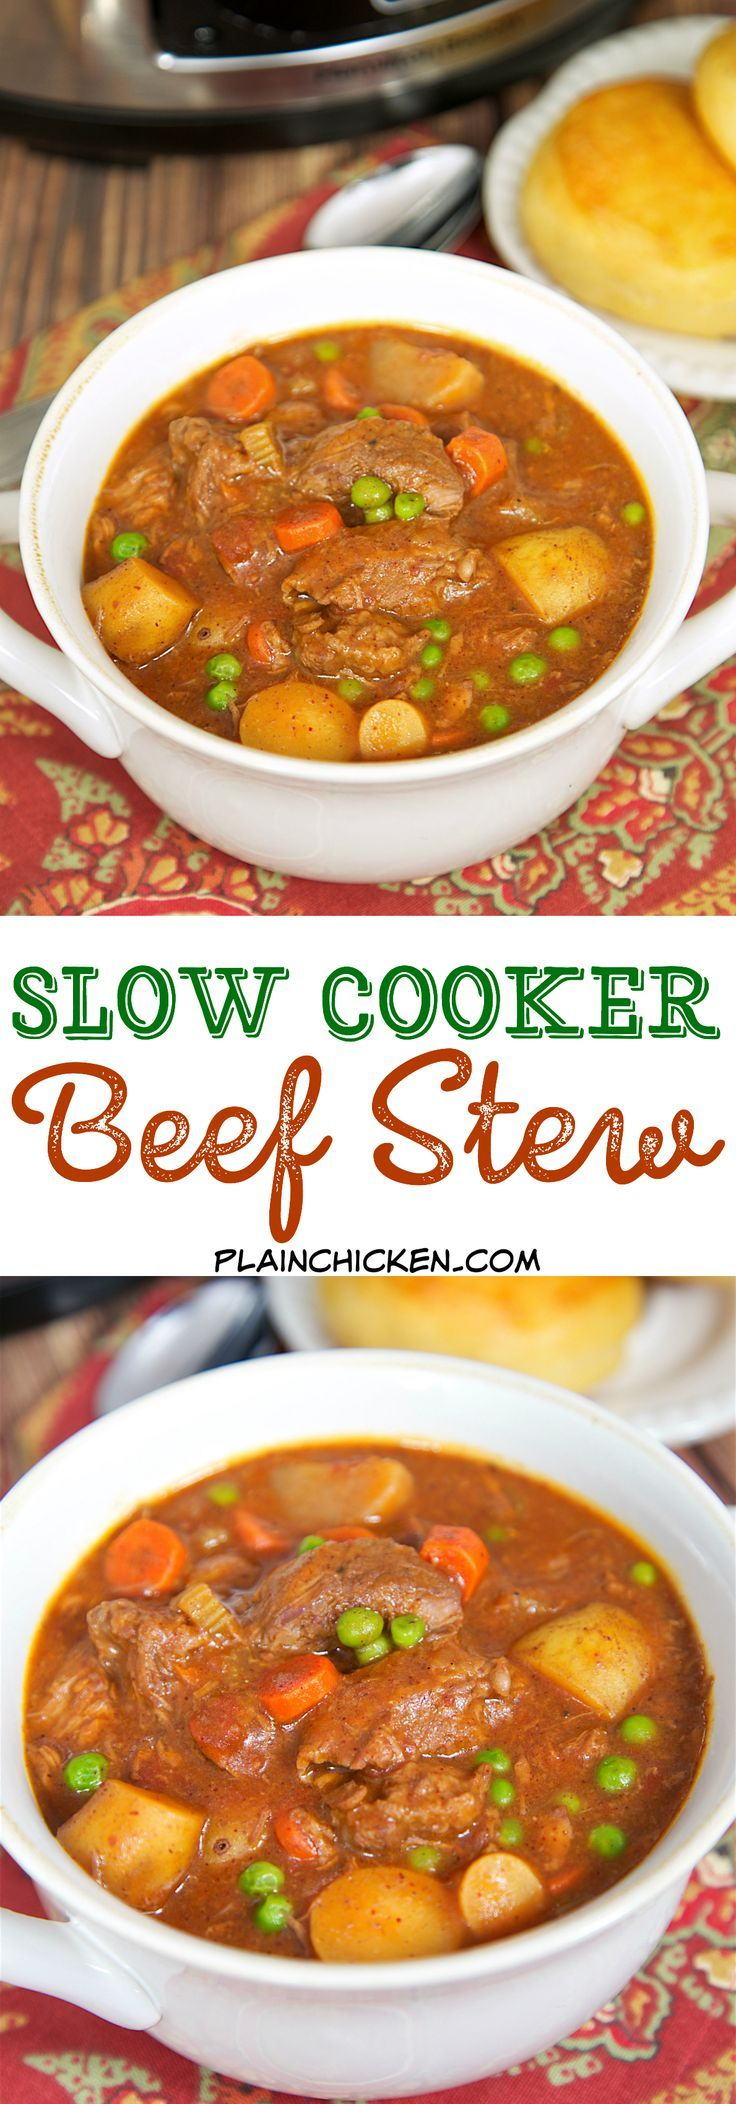 Slow Cooker Beef Stew - beef, potatoes, carrots, green peas, tomatoes, celery, chili powder, brown gravy mix, beef broth. Comfort food at its best! So easy and SO good. Everyone gobbled this up - even the kids!! Serve with some biscuits or cornbread for a